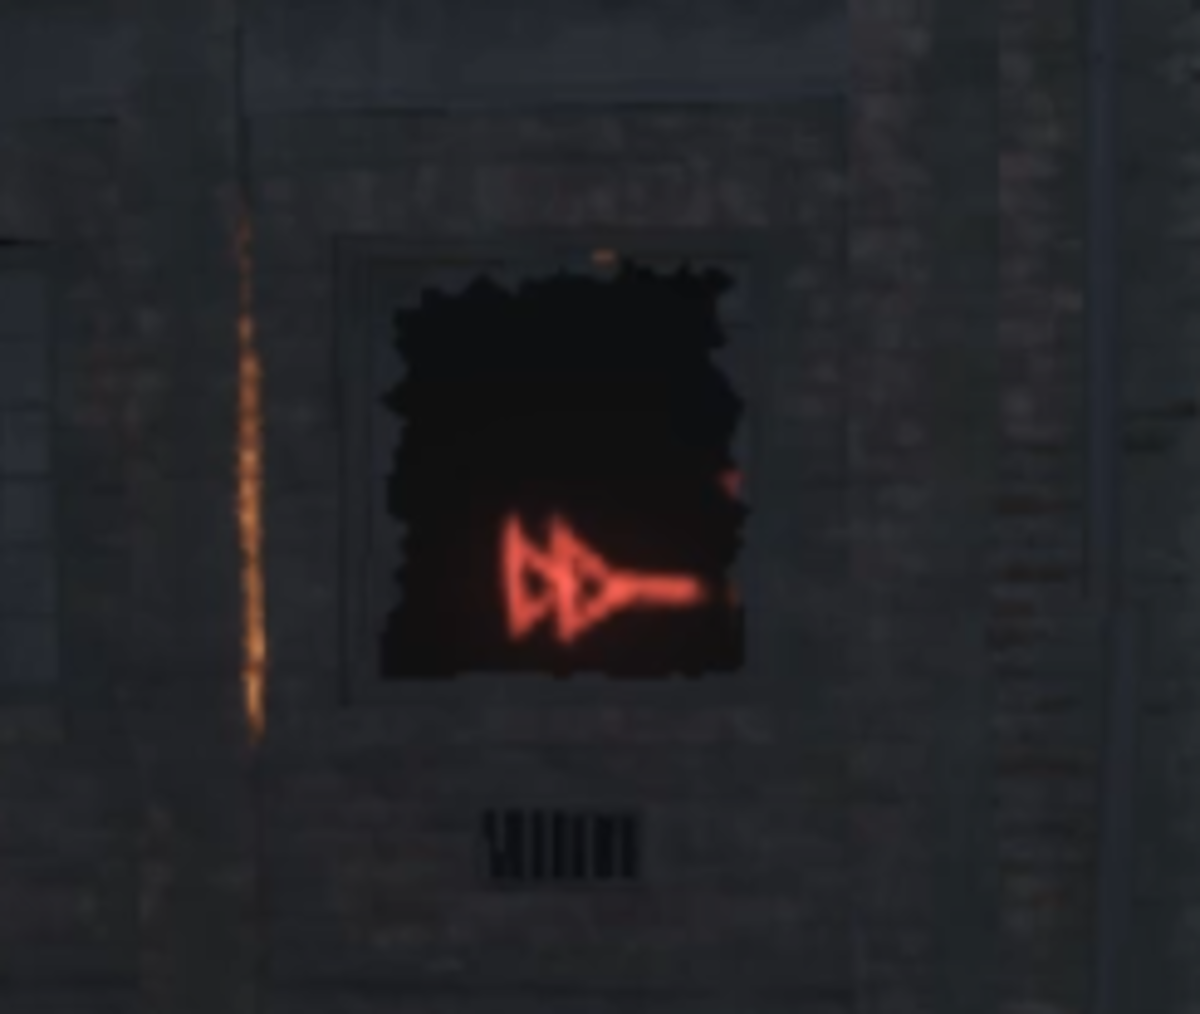 The Symbols will always be red and have arrows pointing to the right.